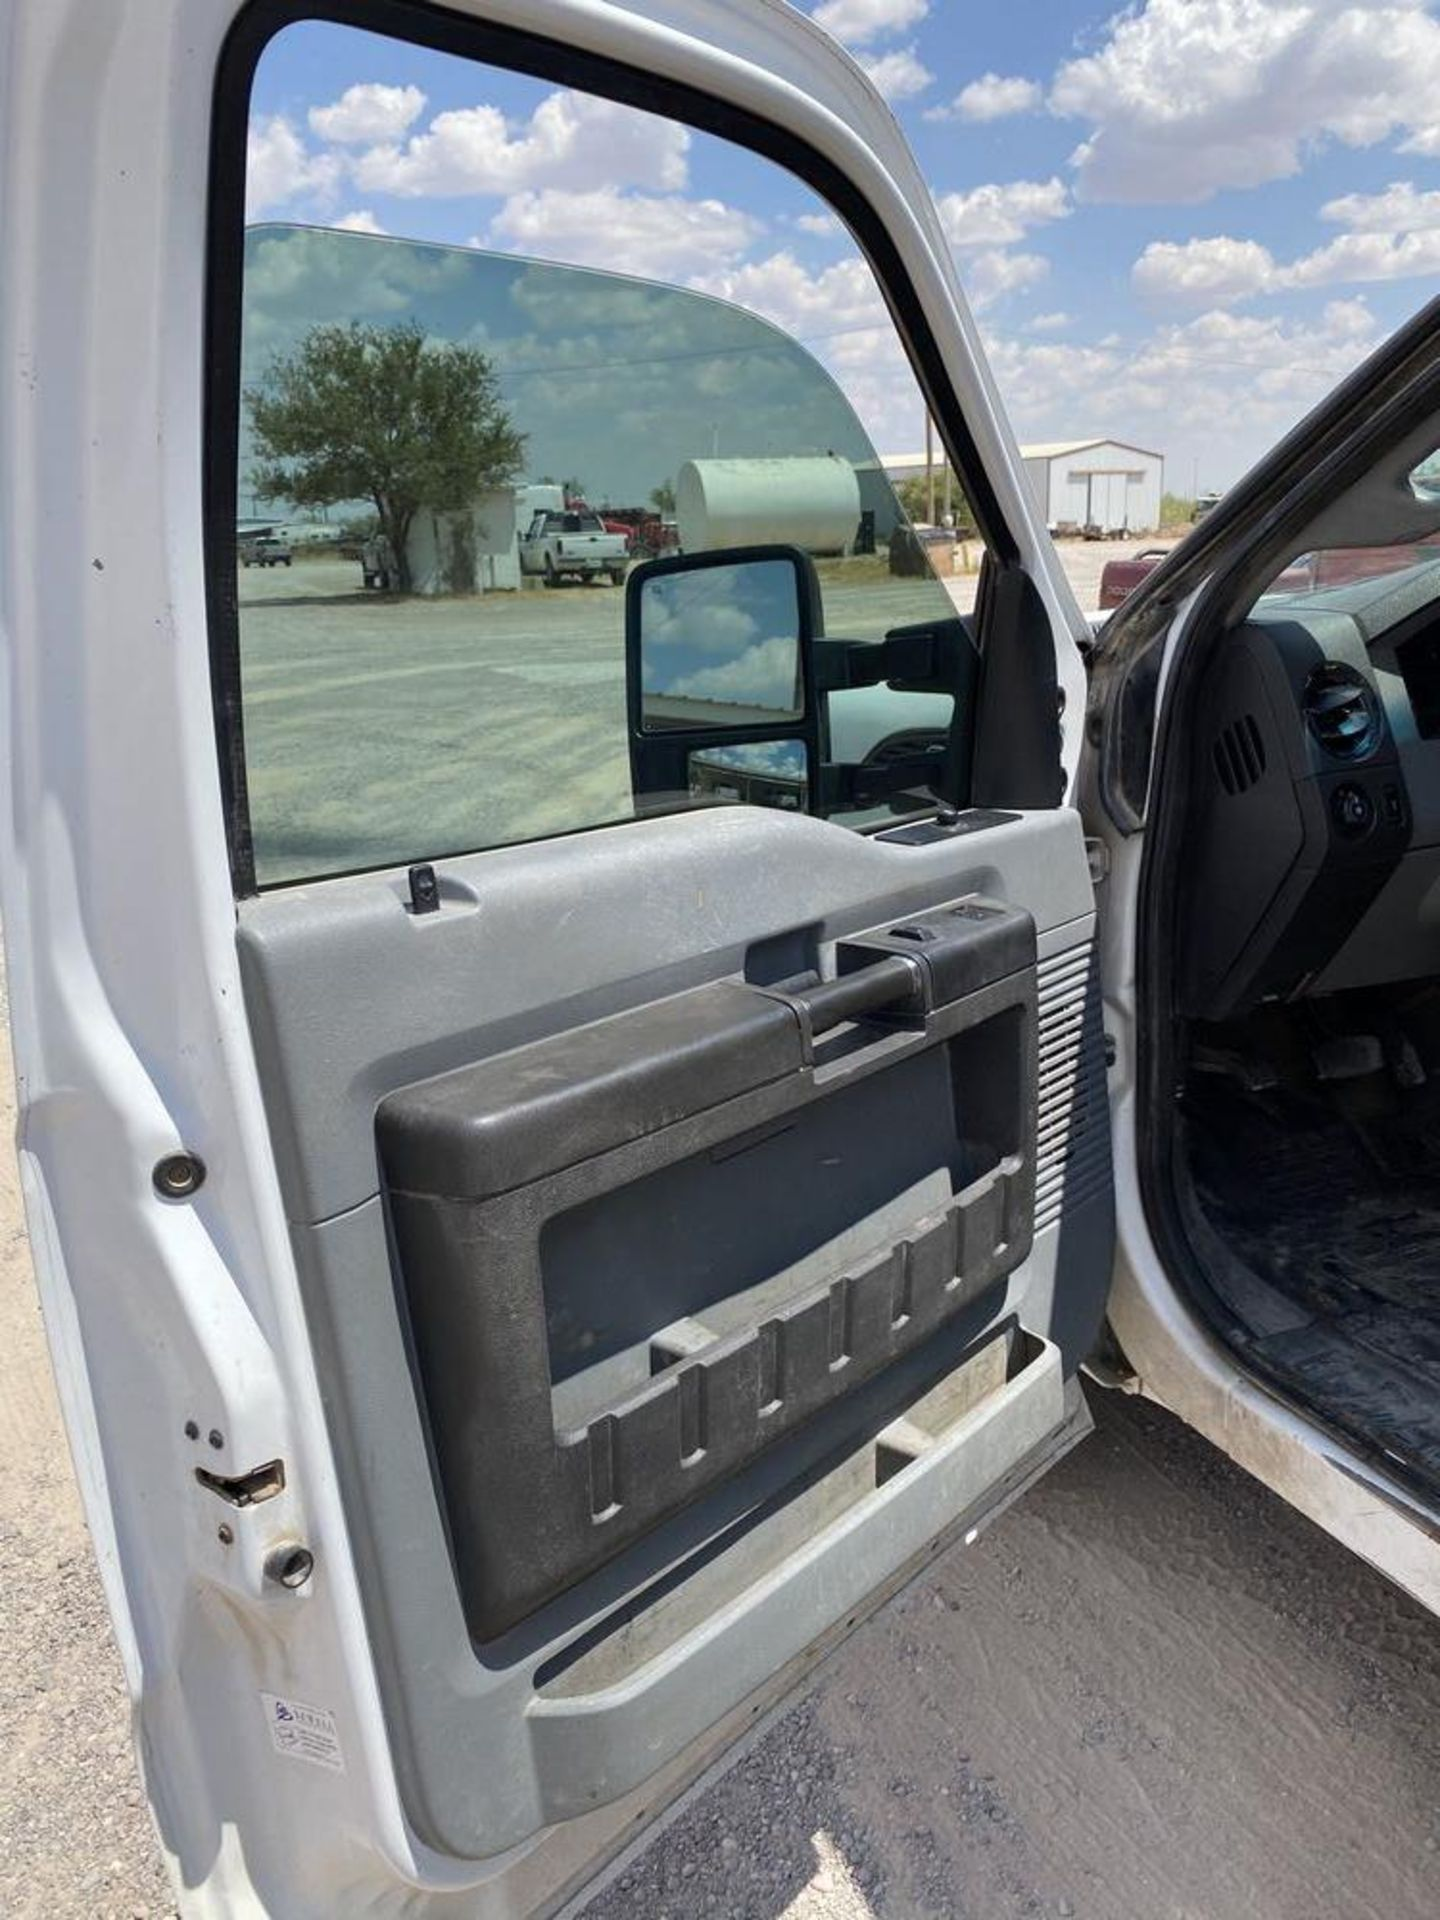 2012 Ford F-250 Super Duty - Image 20 of 20